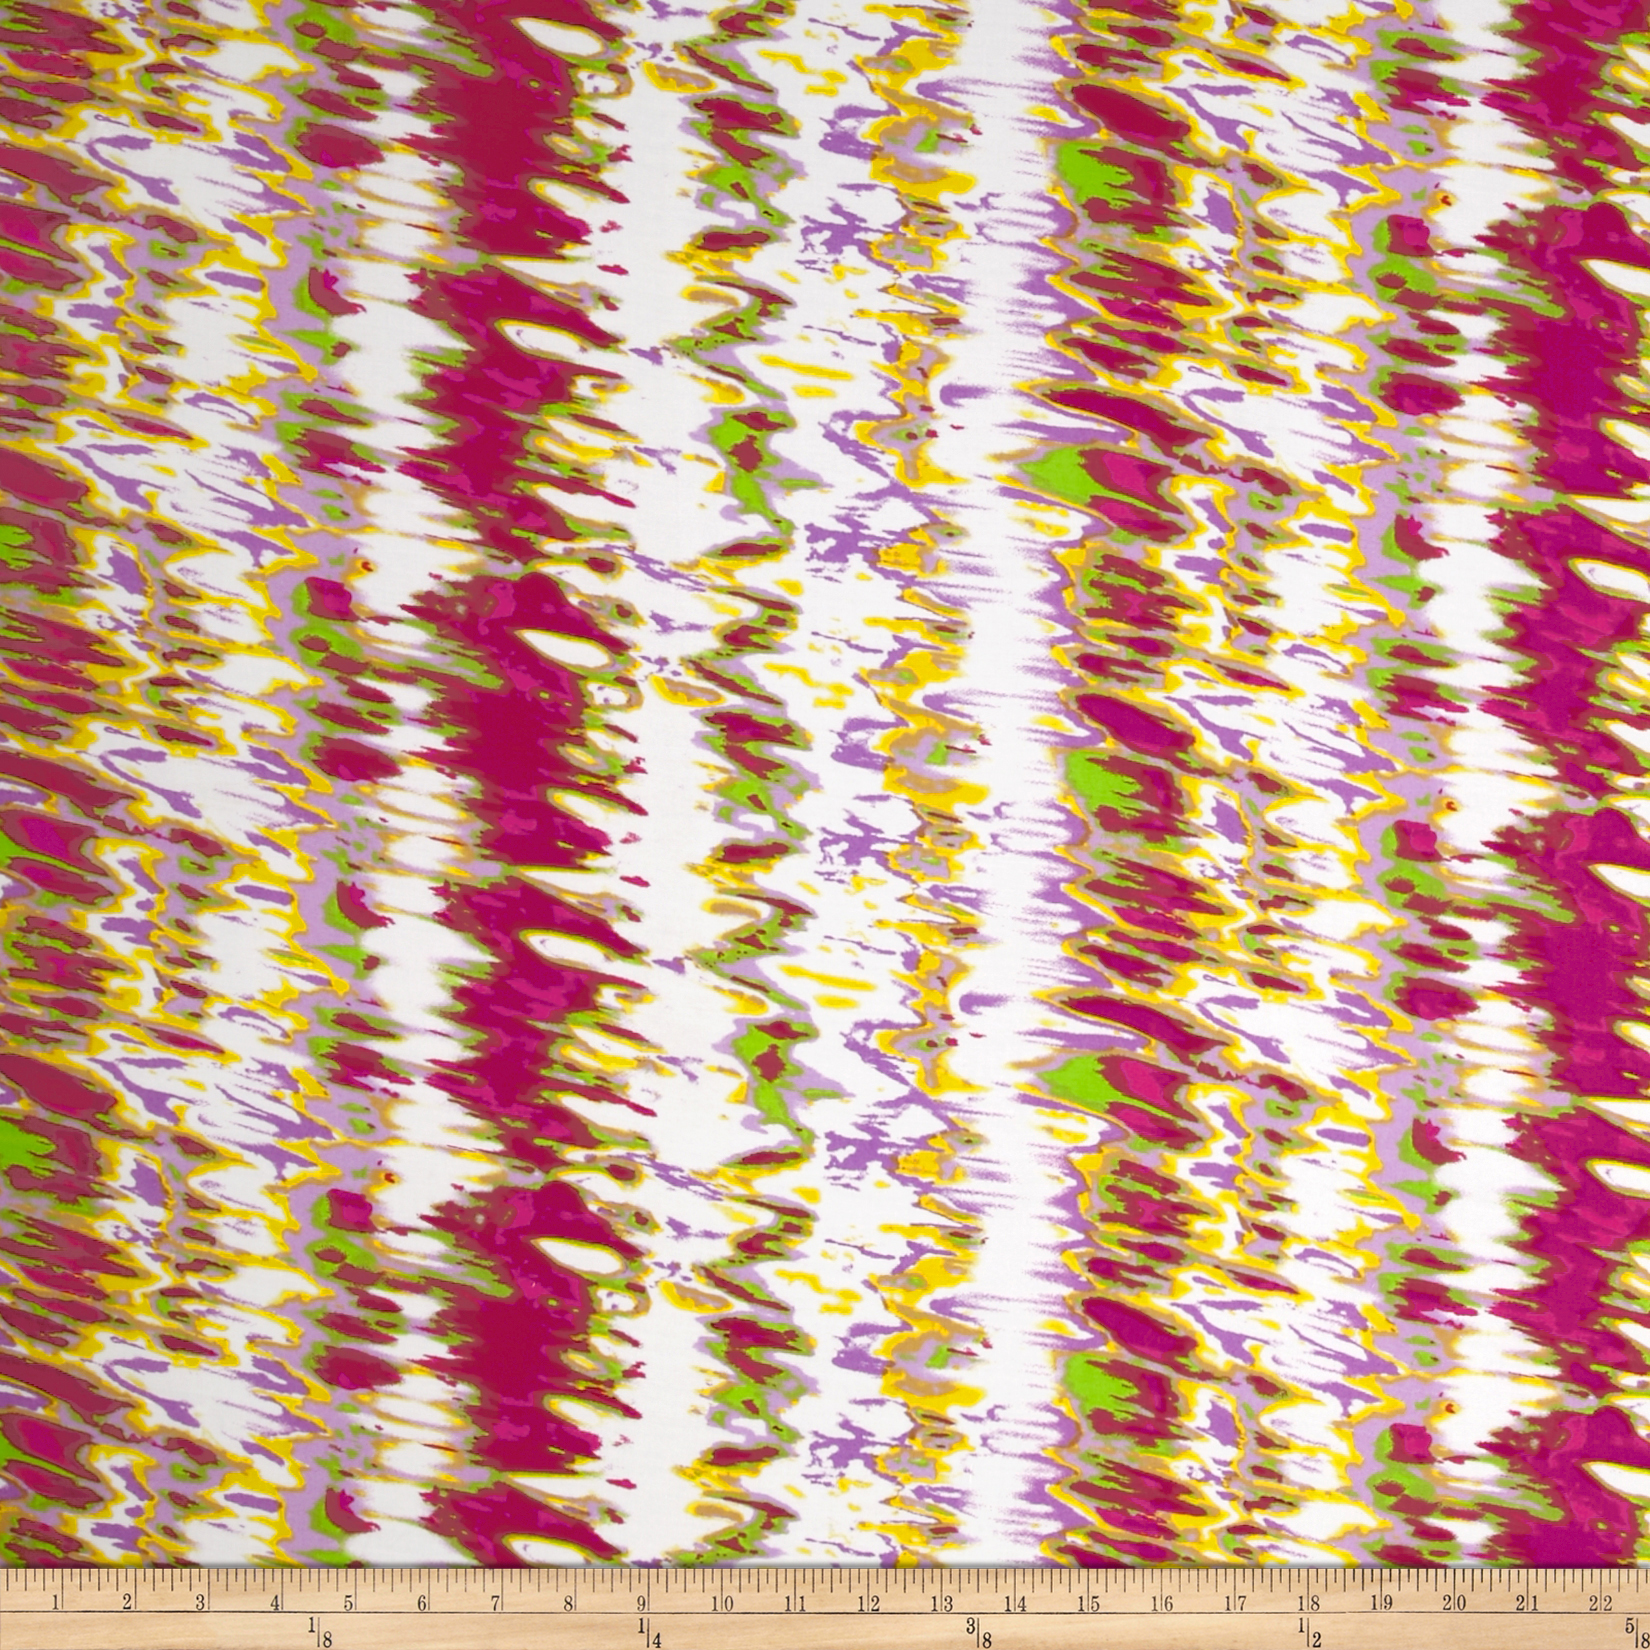 Designer Rayon Challis Blurred Lines Yellow/Purple Fabric